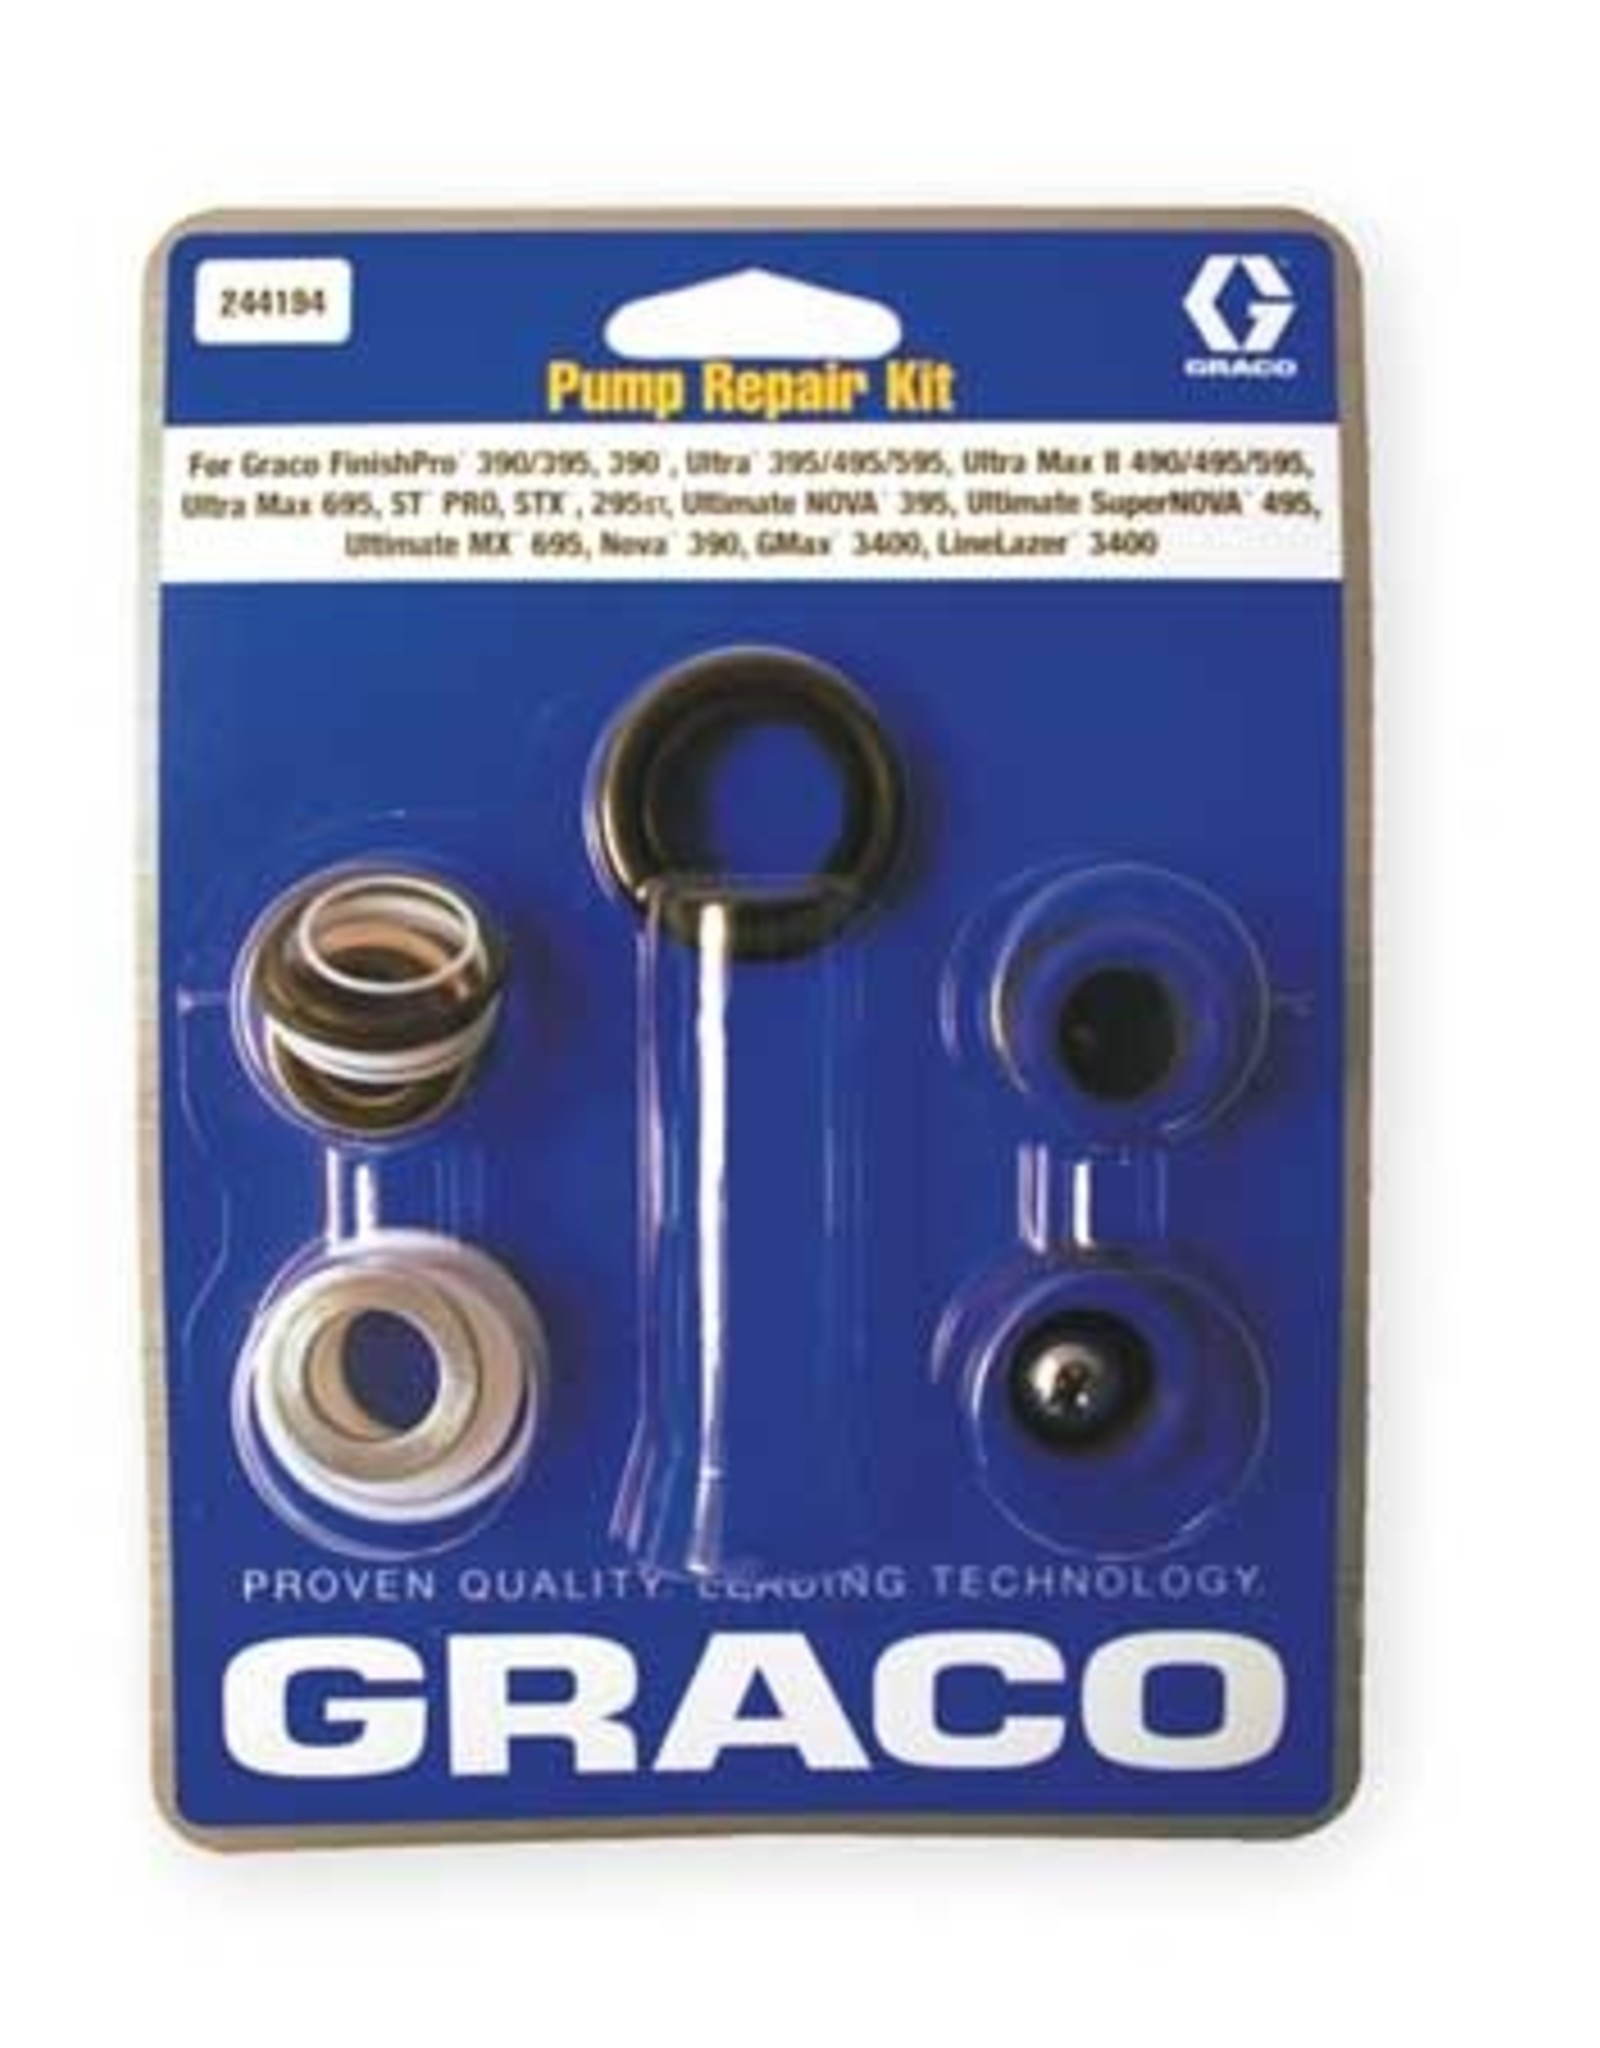 Graco 244194 Superceded By 18B260 Packing Kit